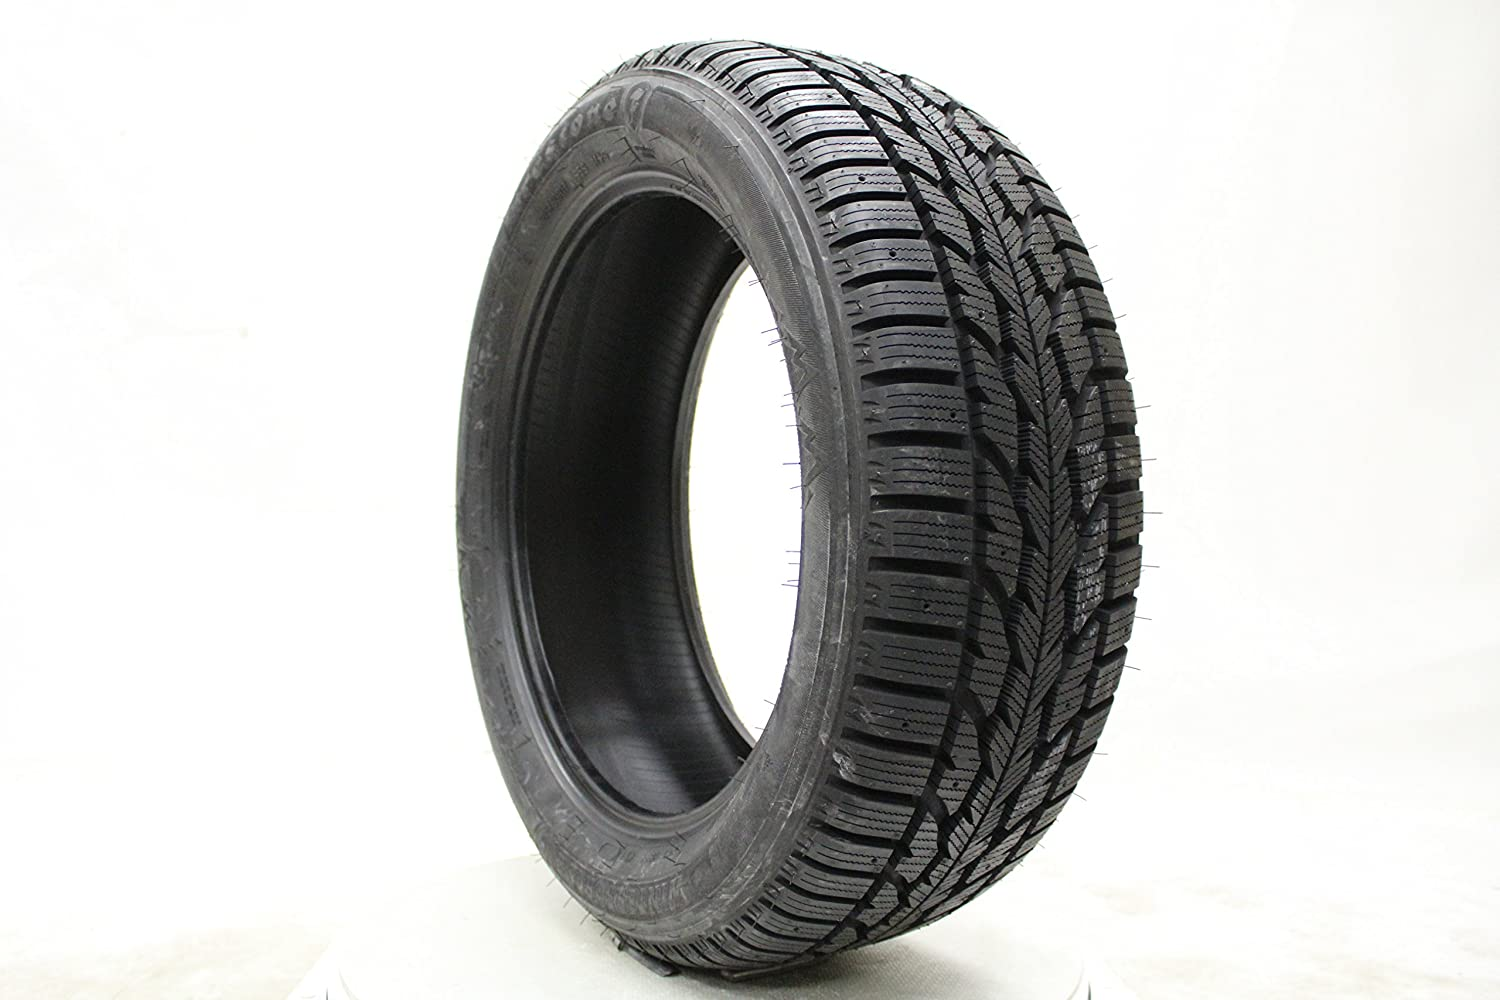 Firestone Winterforce 2 Studable-Winter Radial Tire - 205/60R16 92S 149099